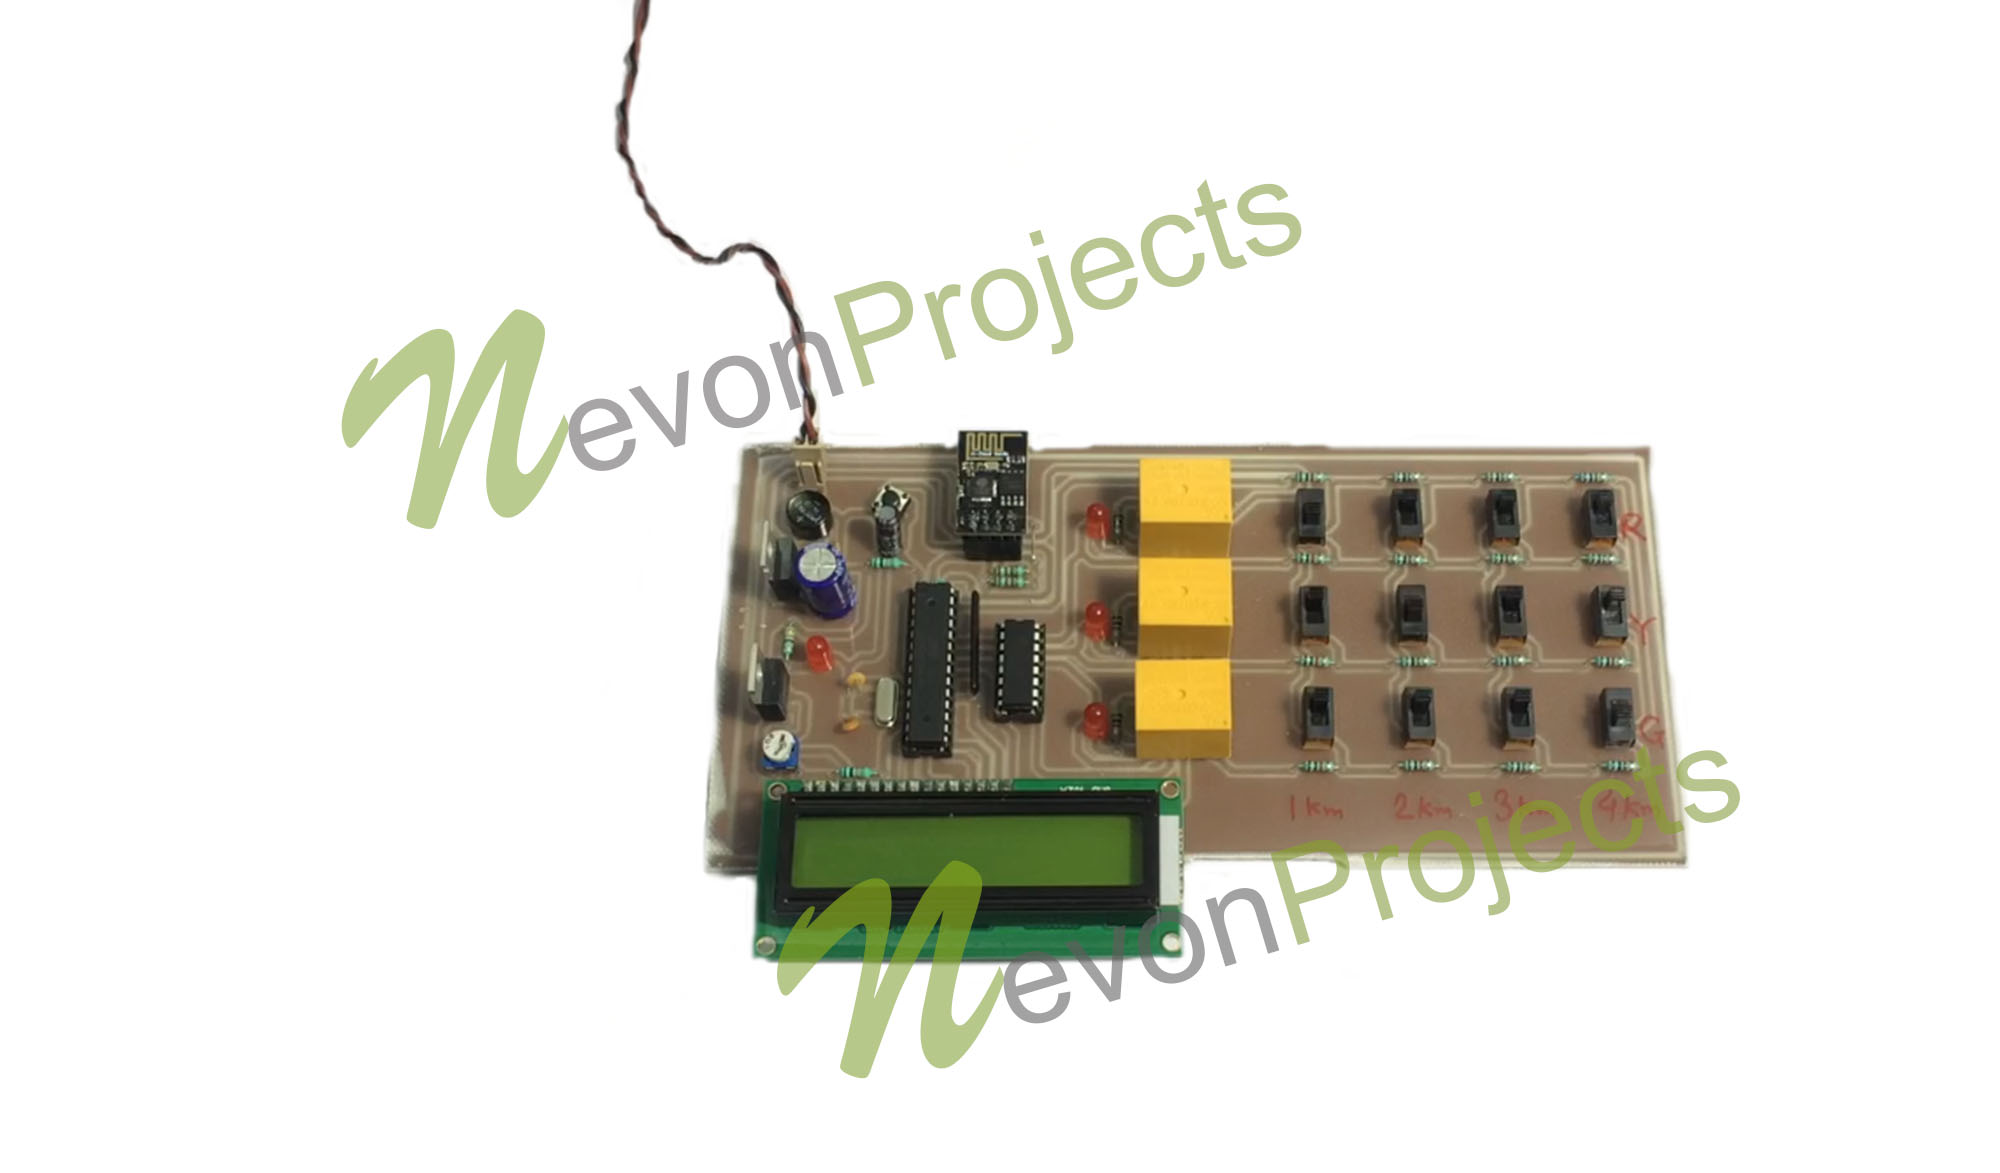 Iot Underground Cable Fault Detector Project Nevonprojects Electronic Circuit Kits India